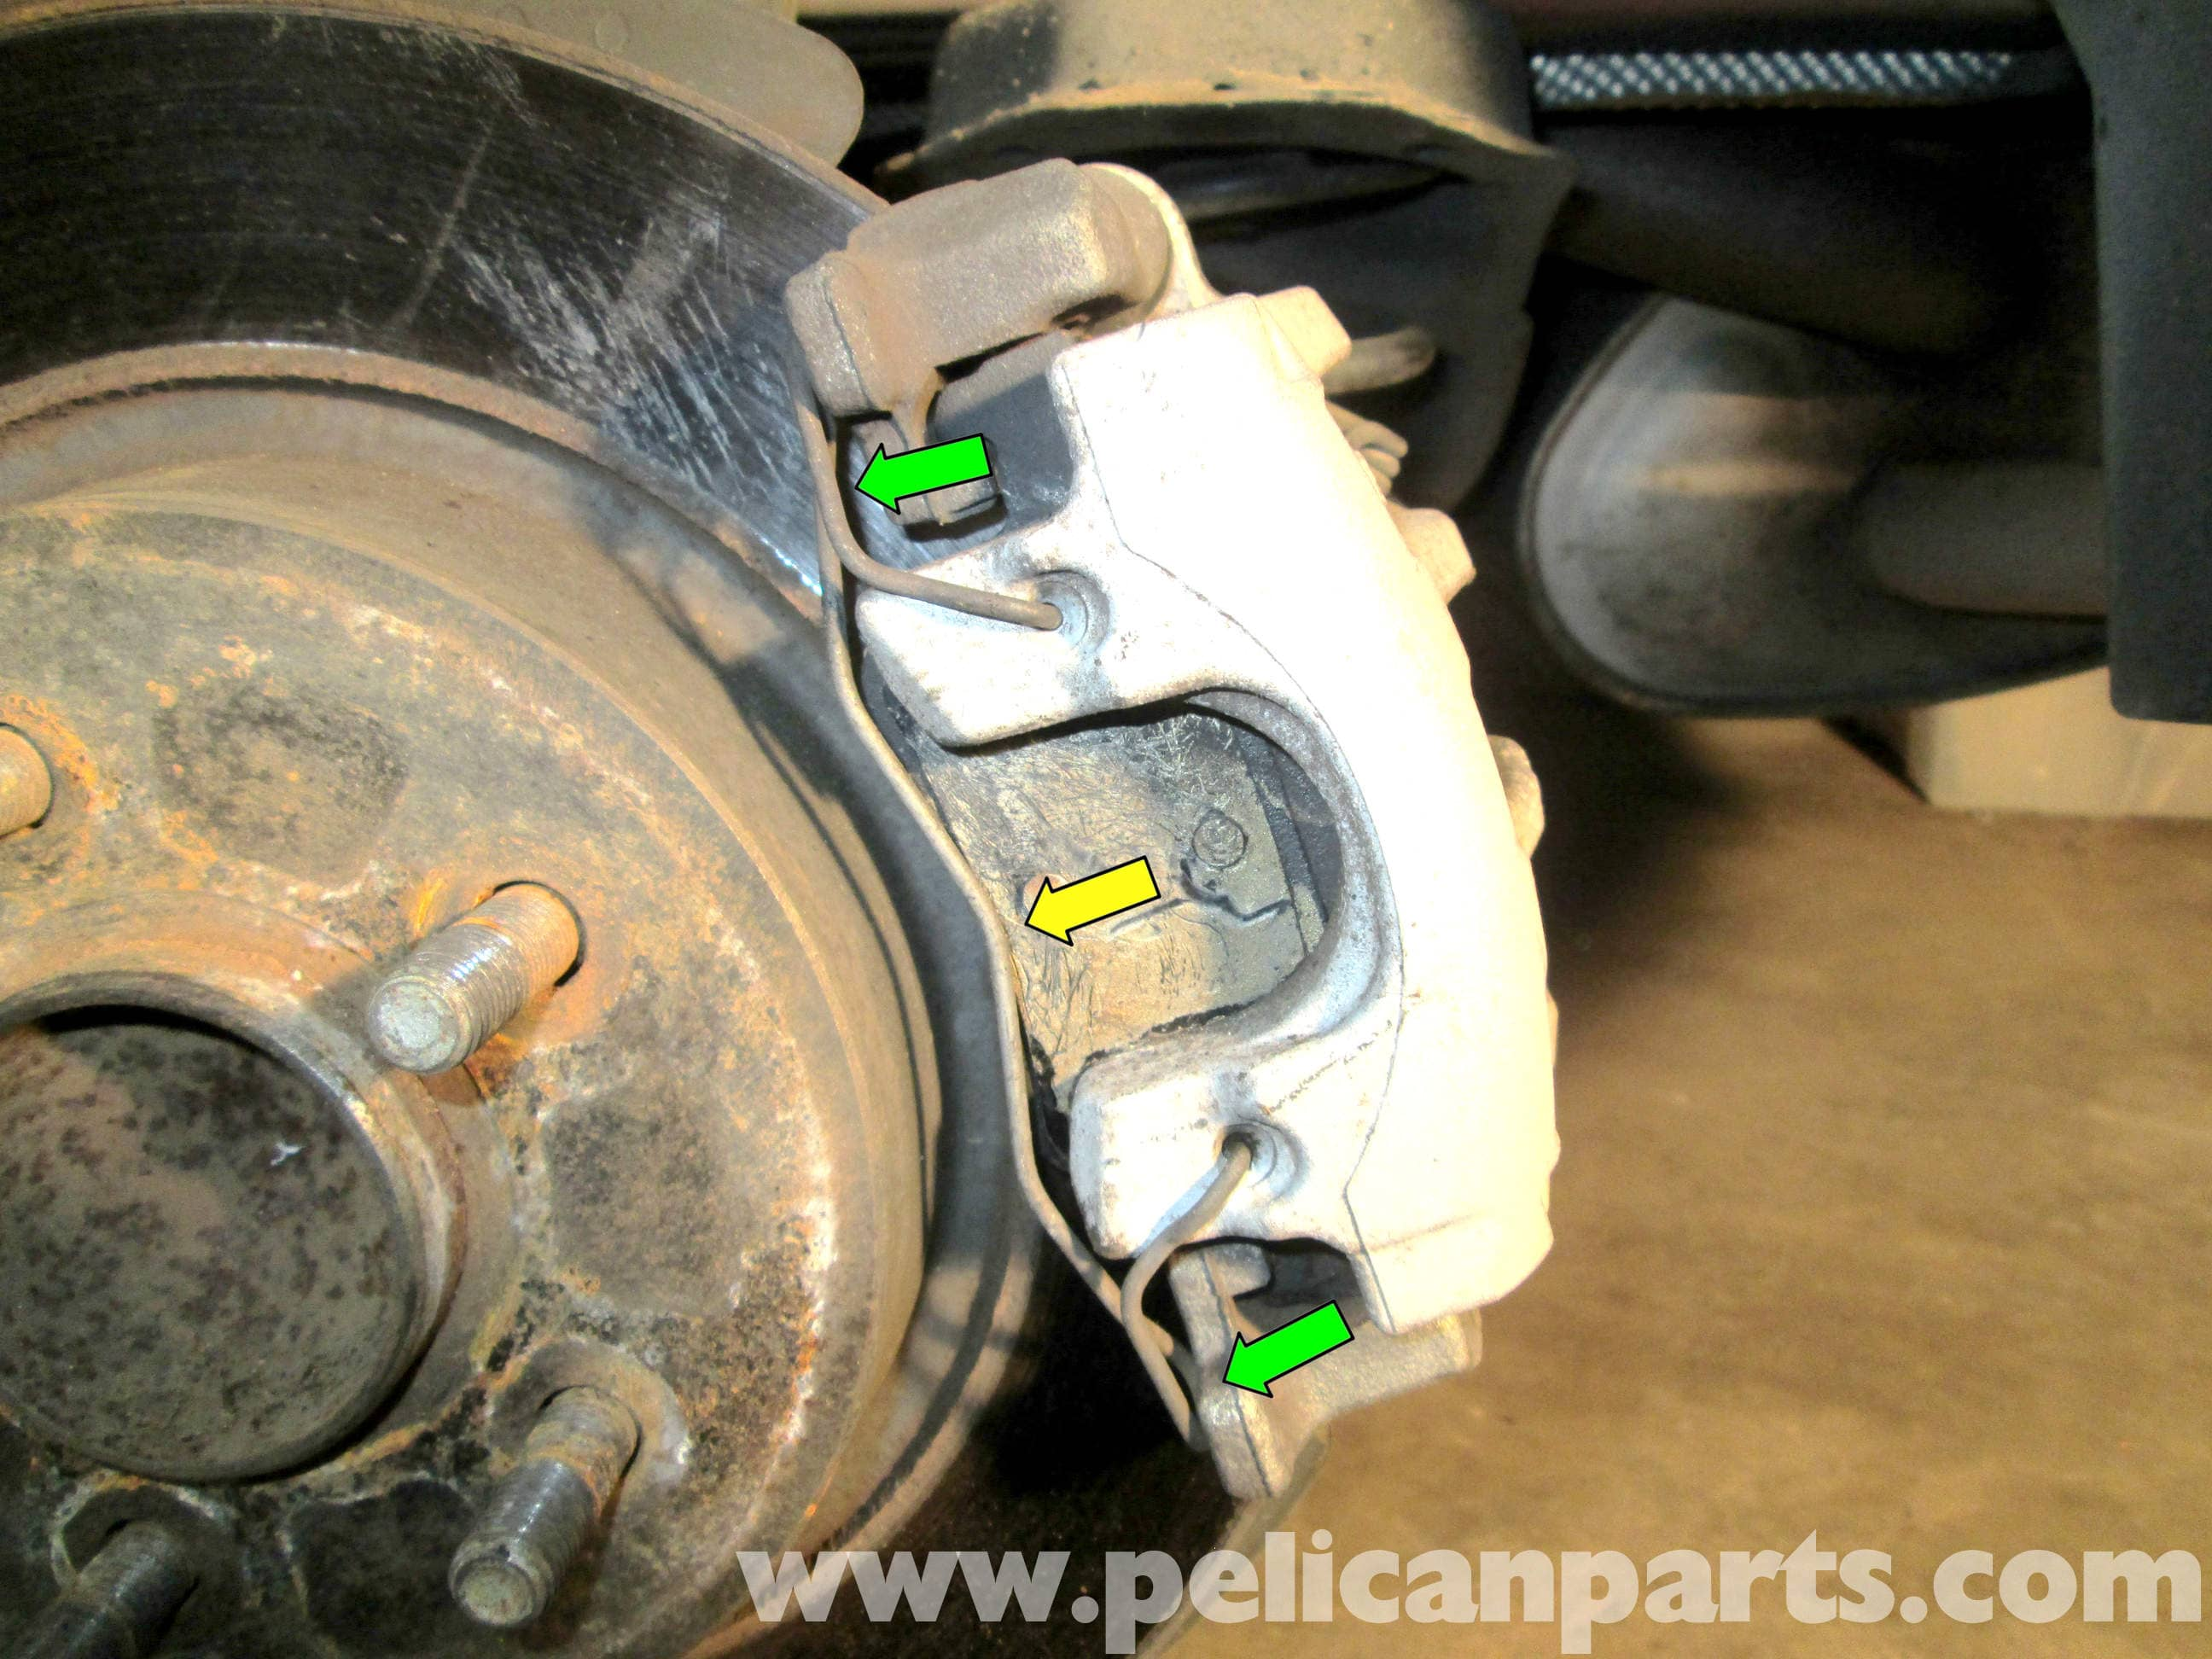 How To Flare A Brake Line >> Volvo C30 Rear Brake Caliper Replacement (2007-2013 ...